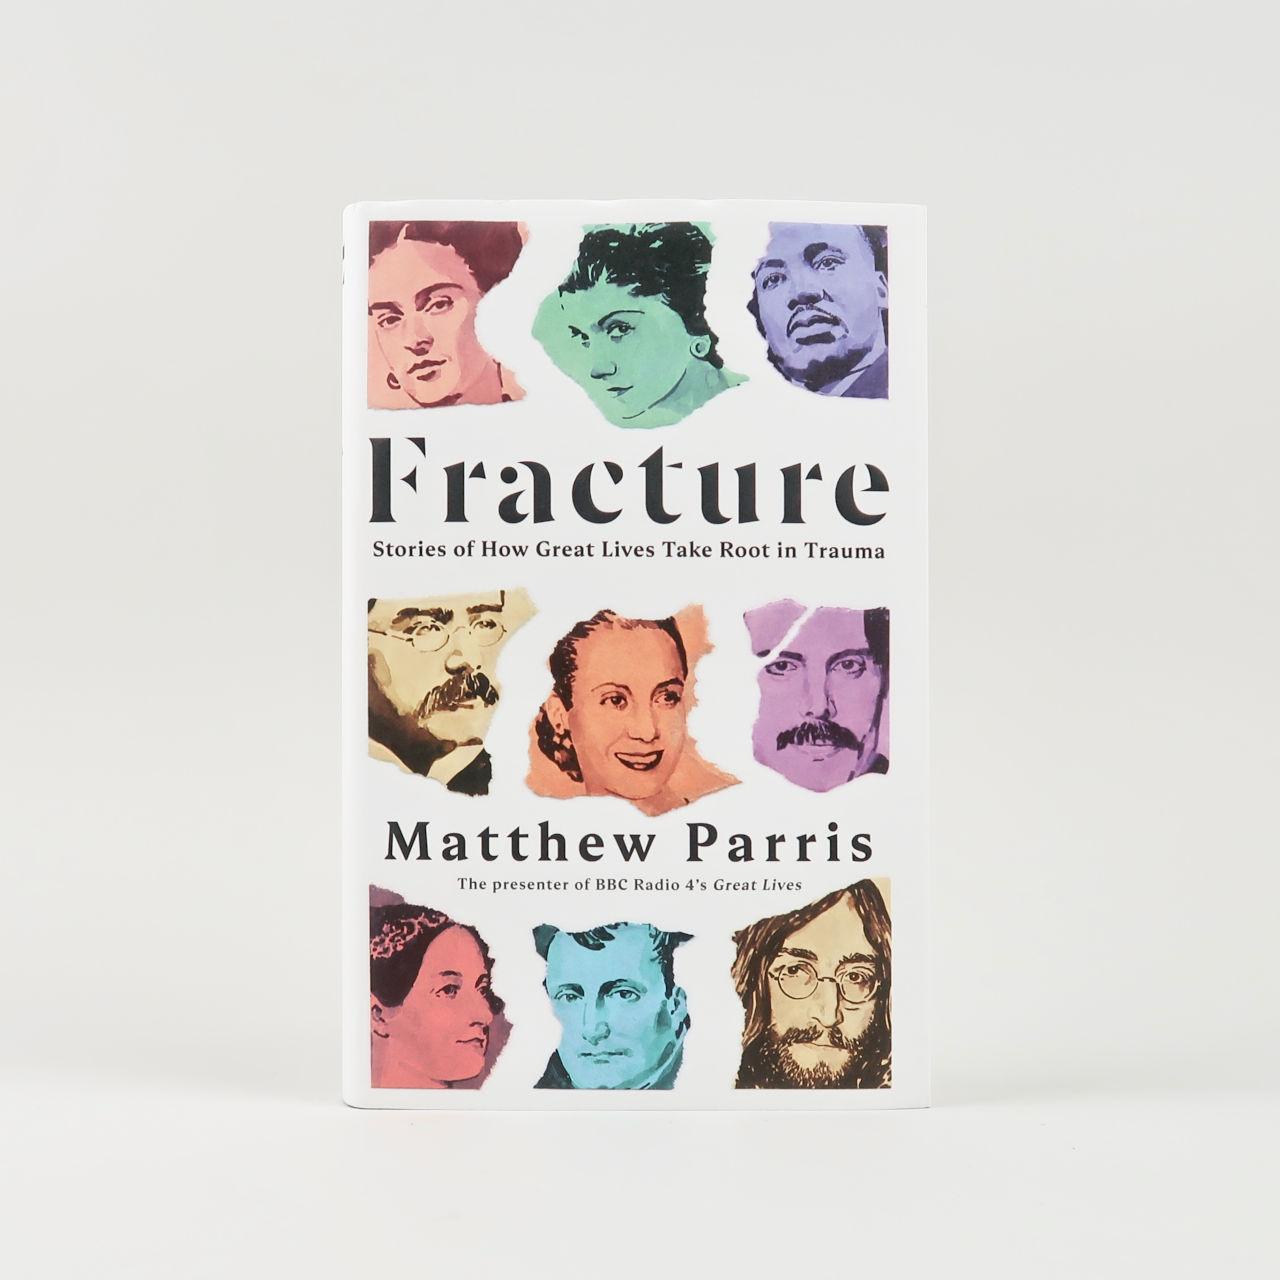 Fracture: Stories of How Great Lives Take Root in Trauma - Matthew Parris